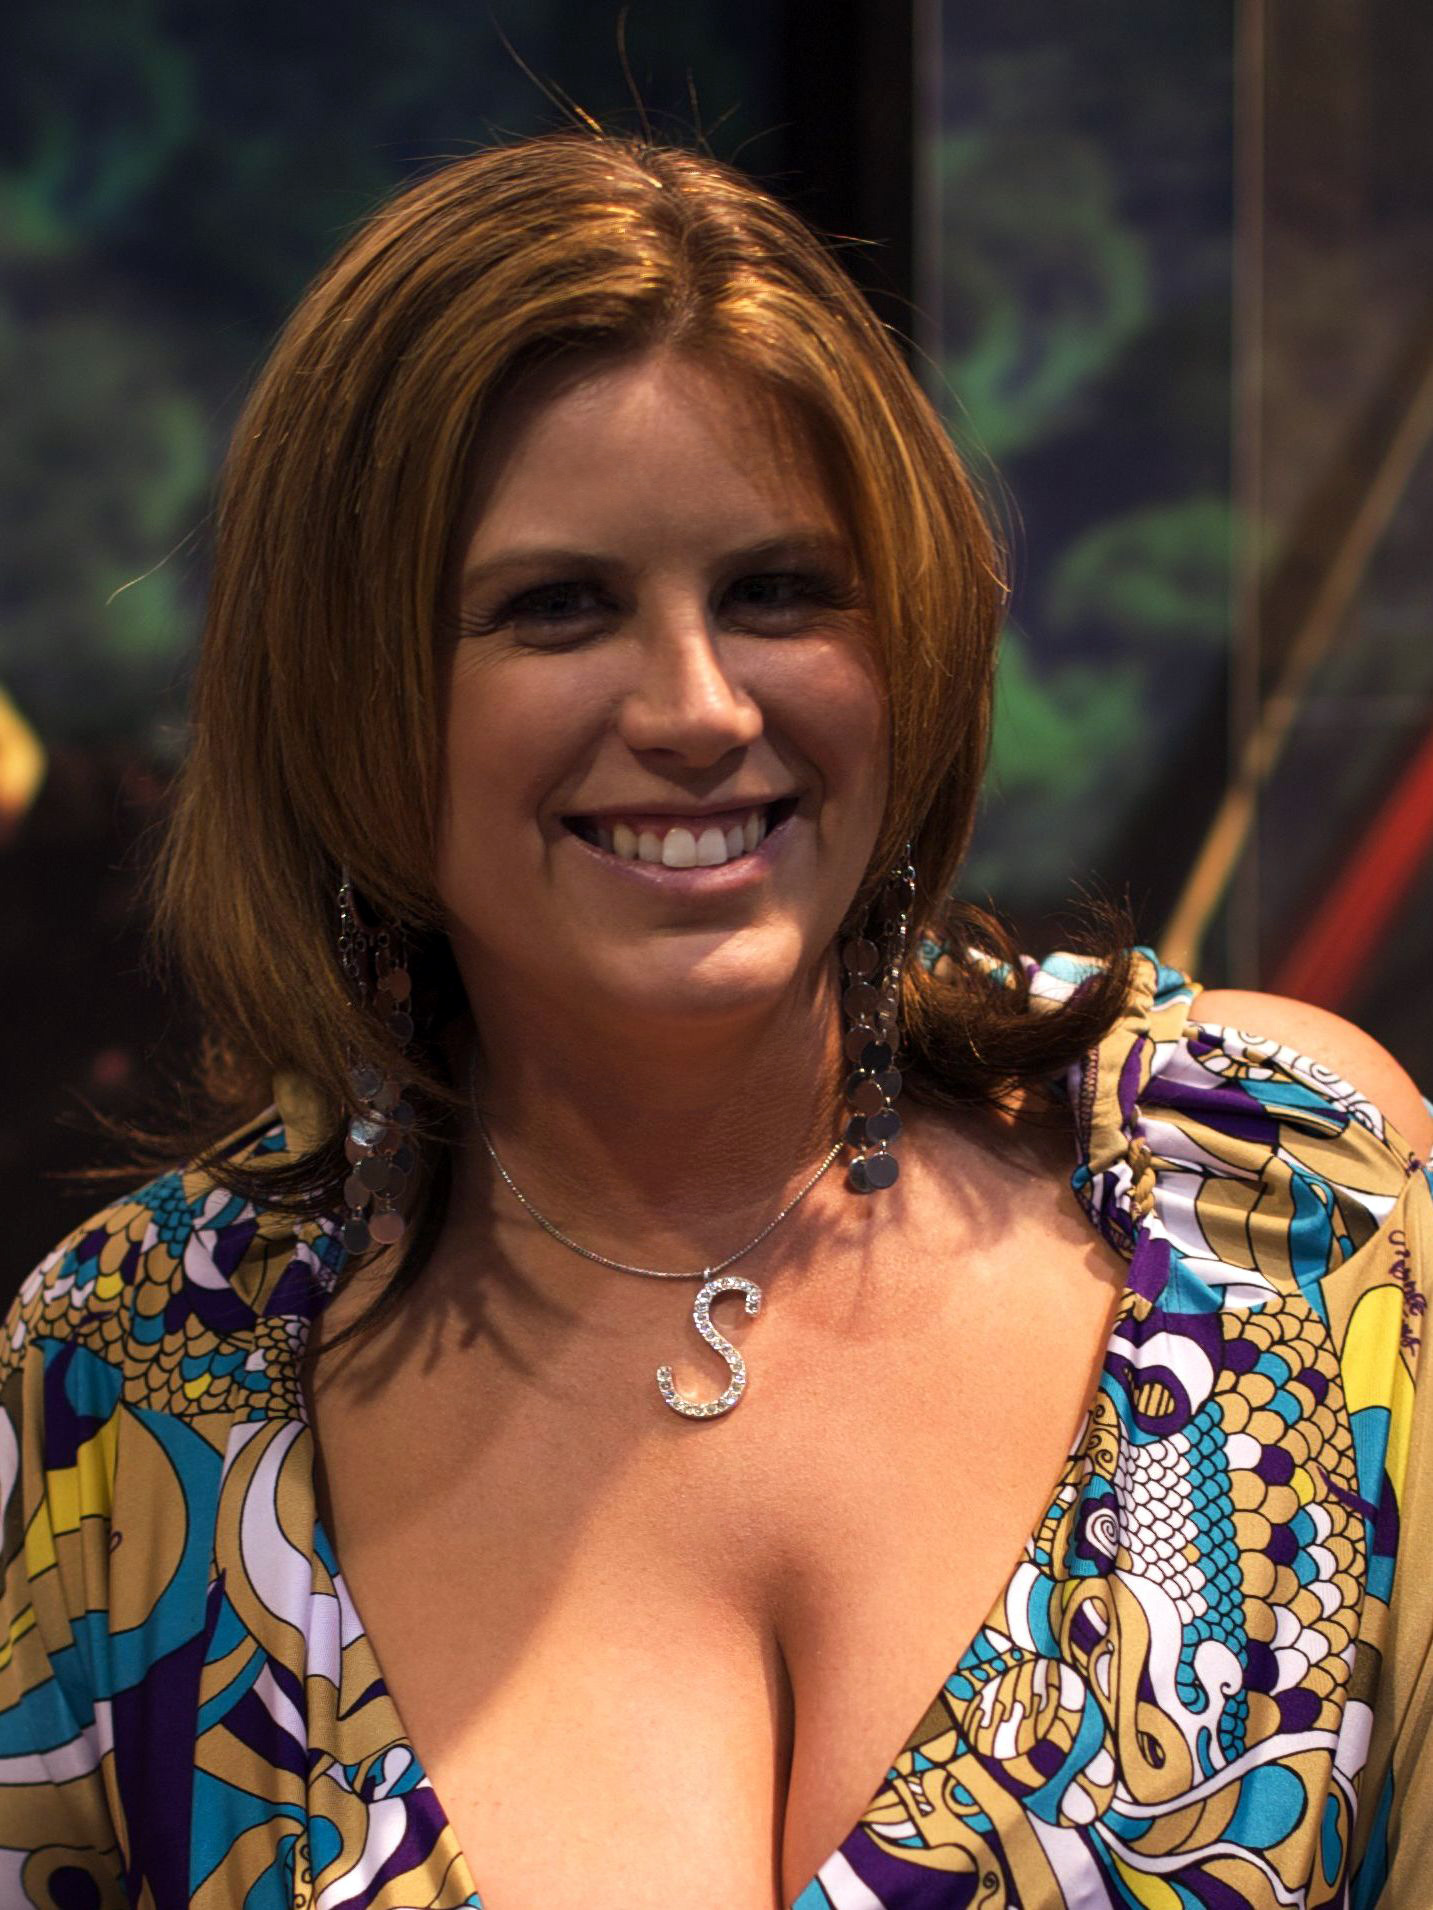 image Lisa sparxxx is way fucking hotter since she put on weight